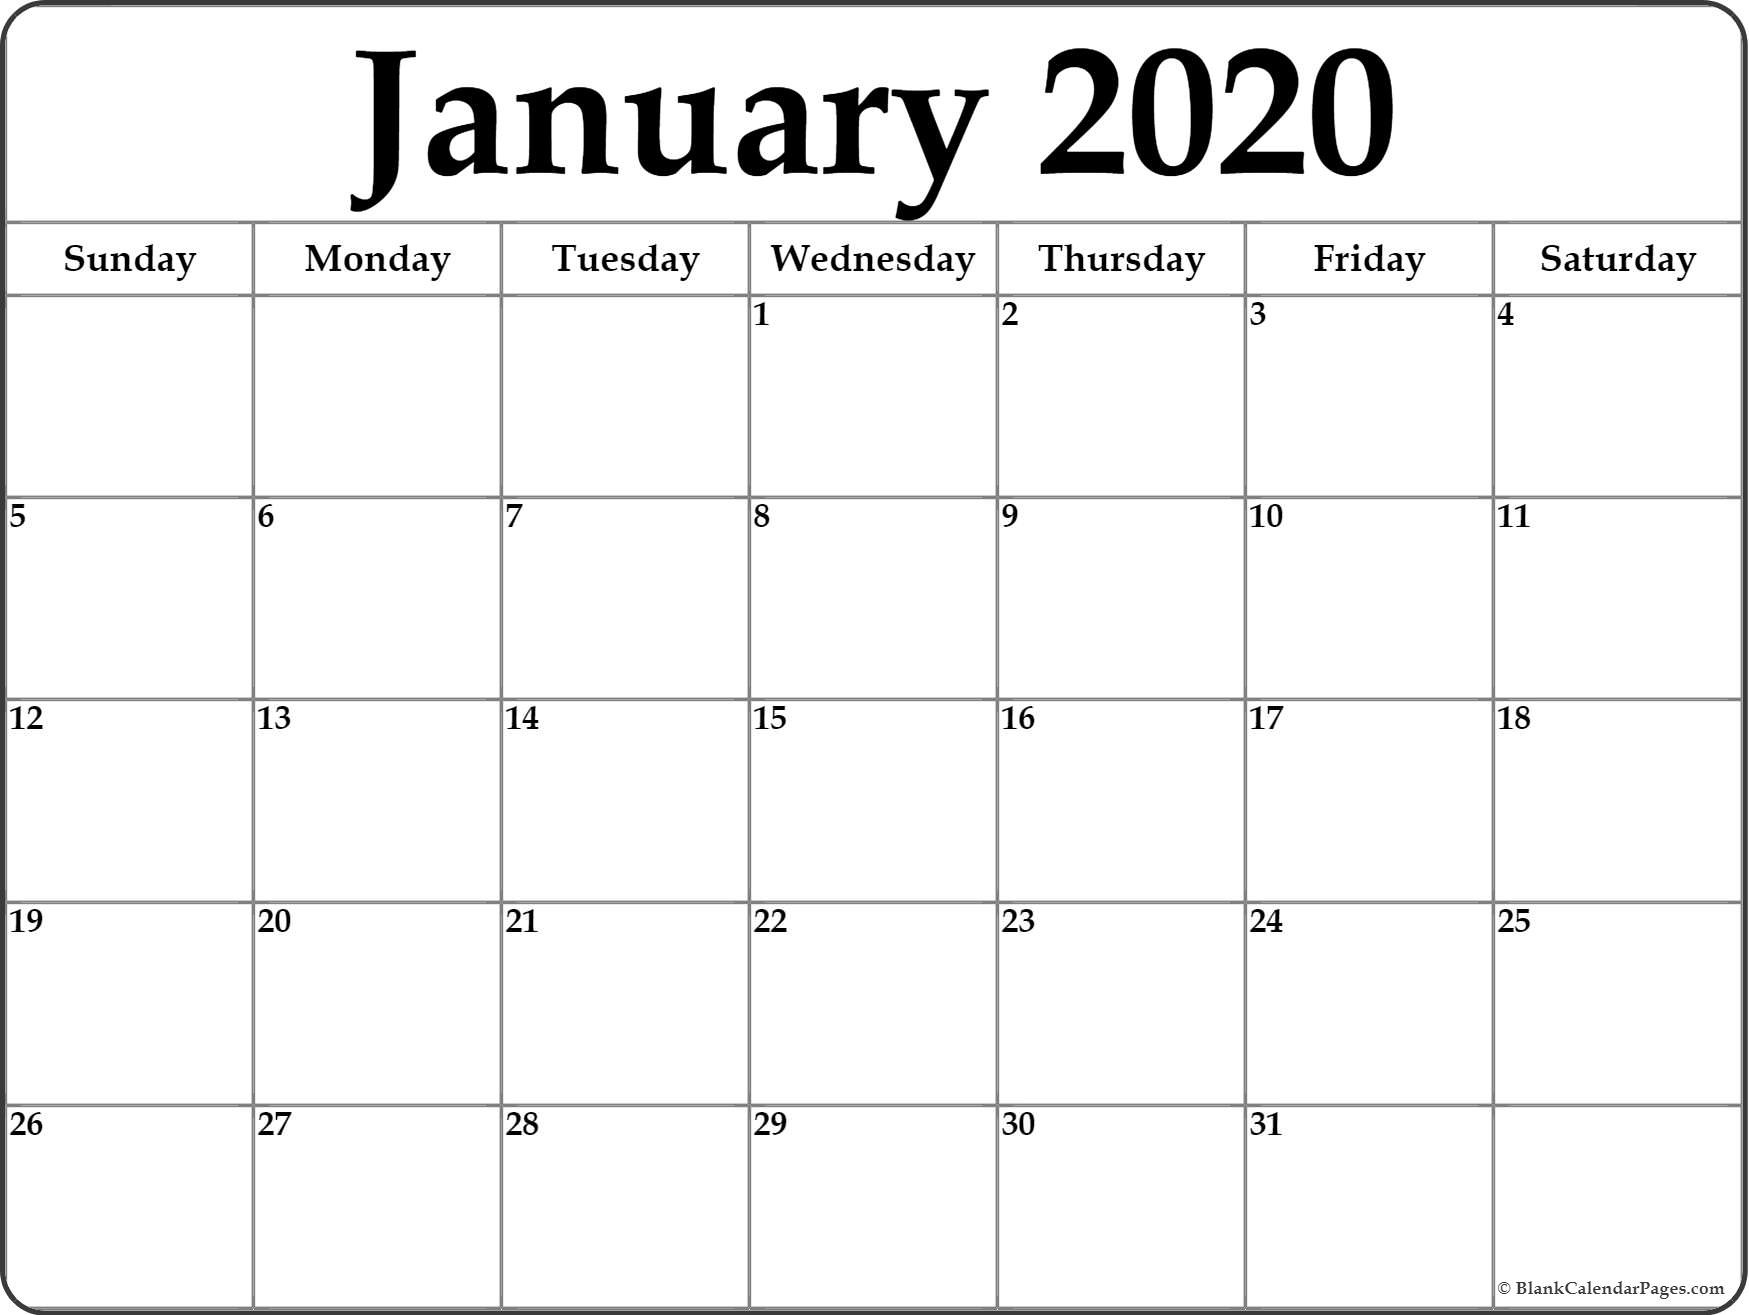 January 2020 Calendar | Free Printable Monthly Calendars-Fill In Monthly Calendar 2020